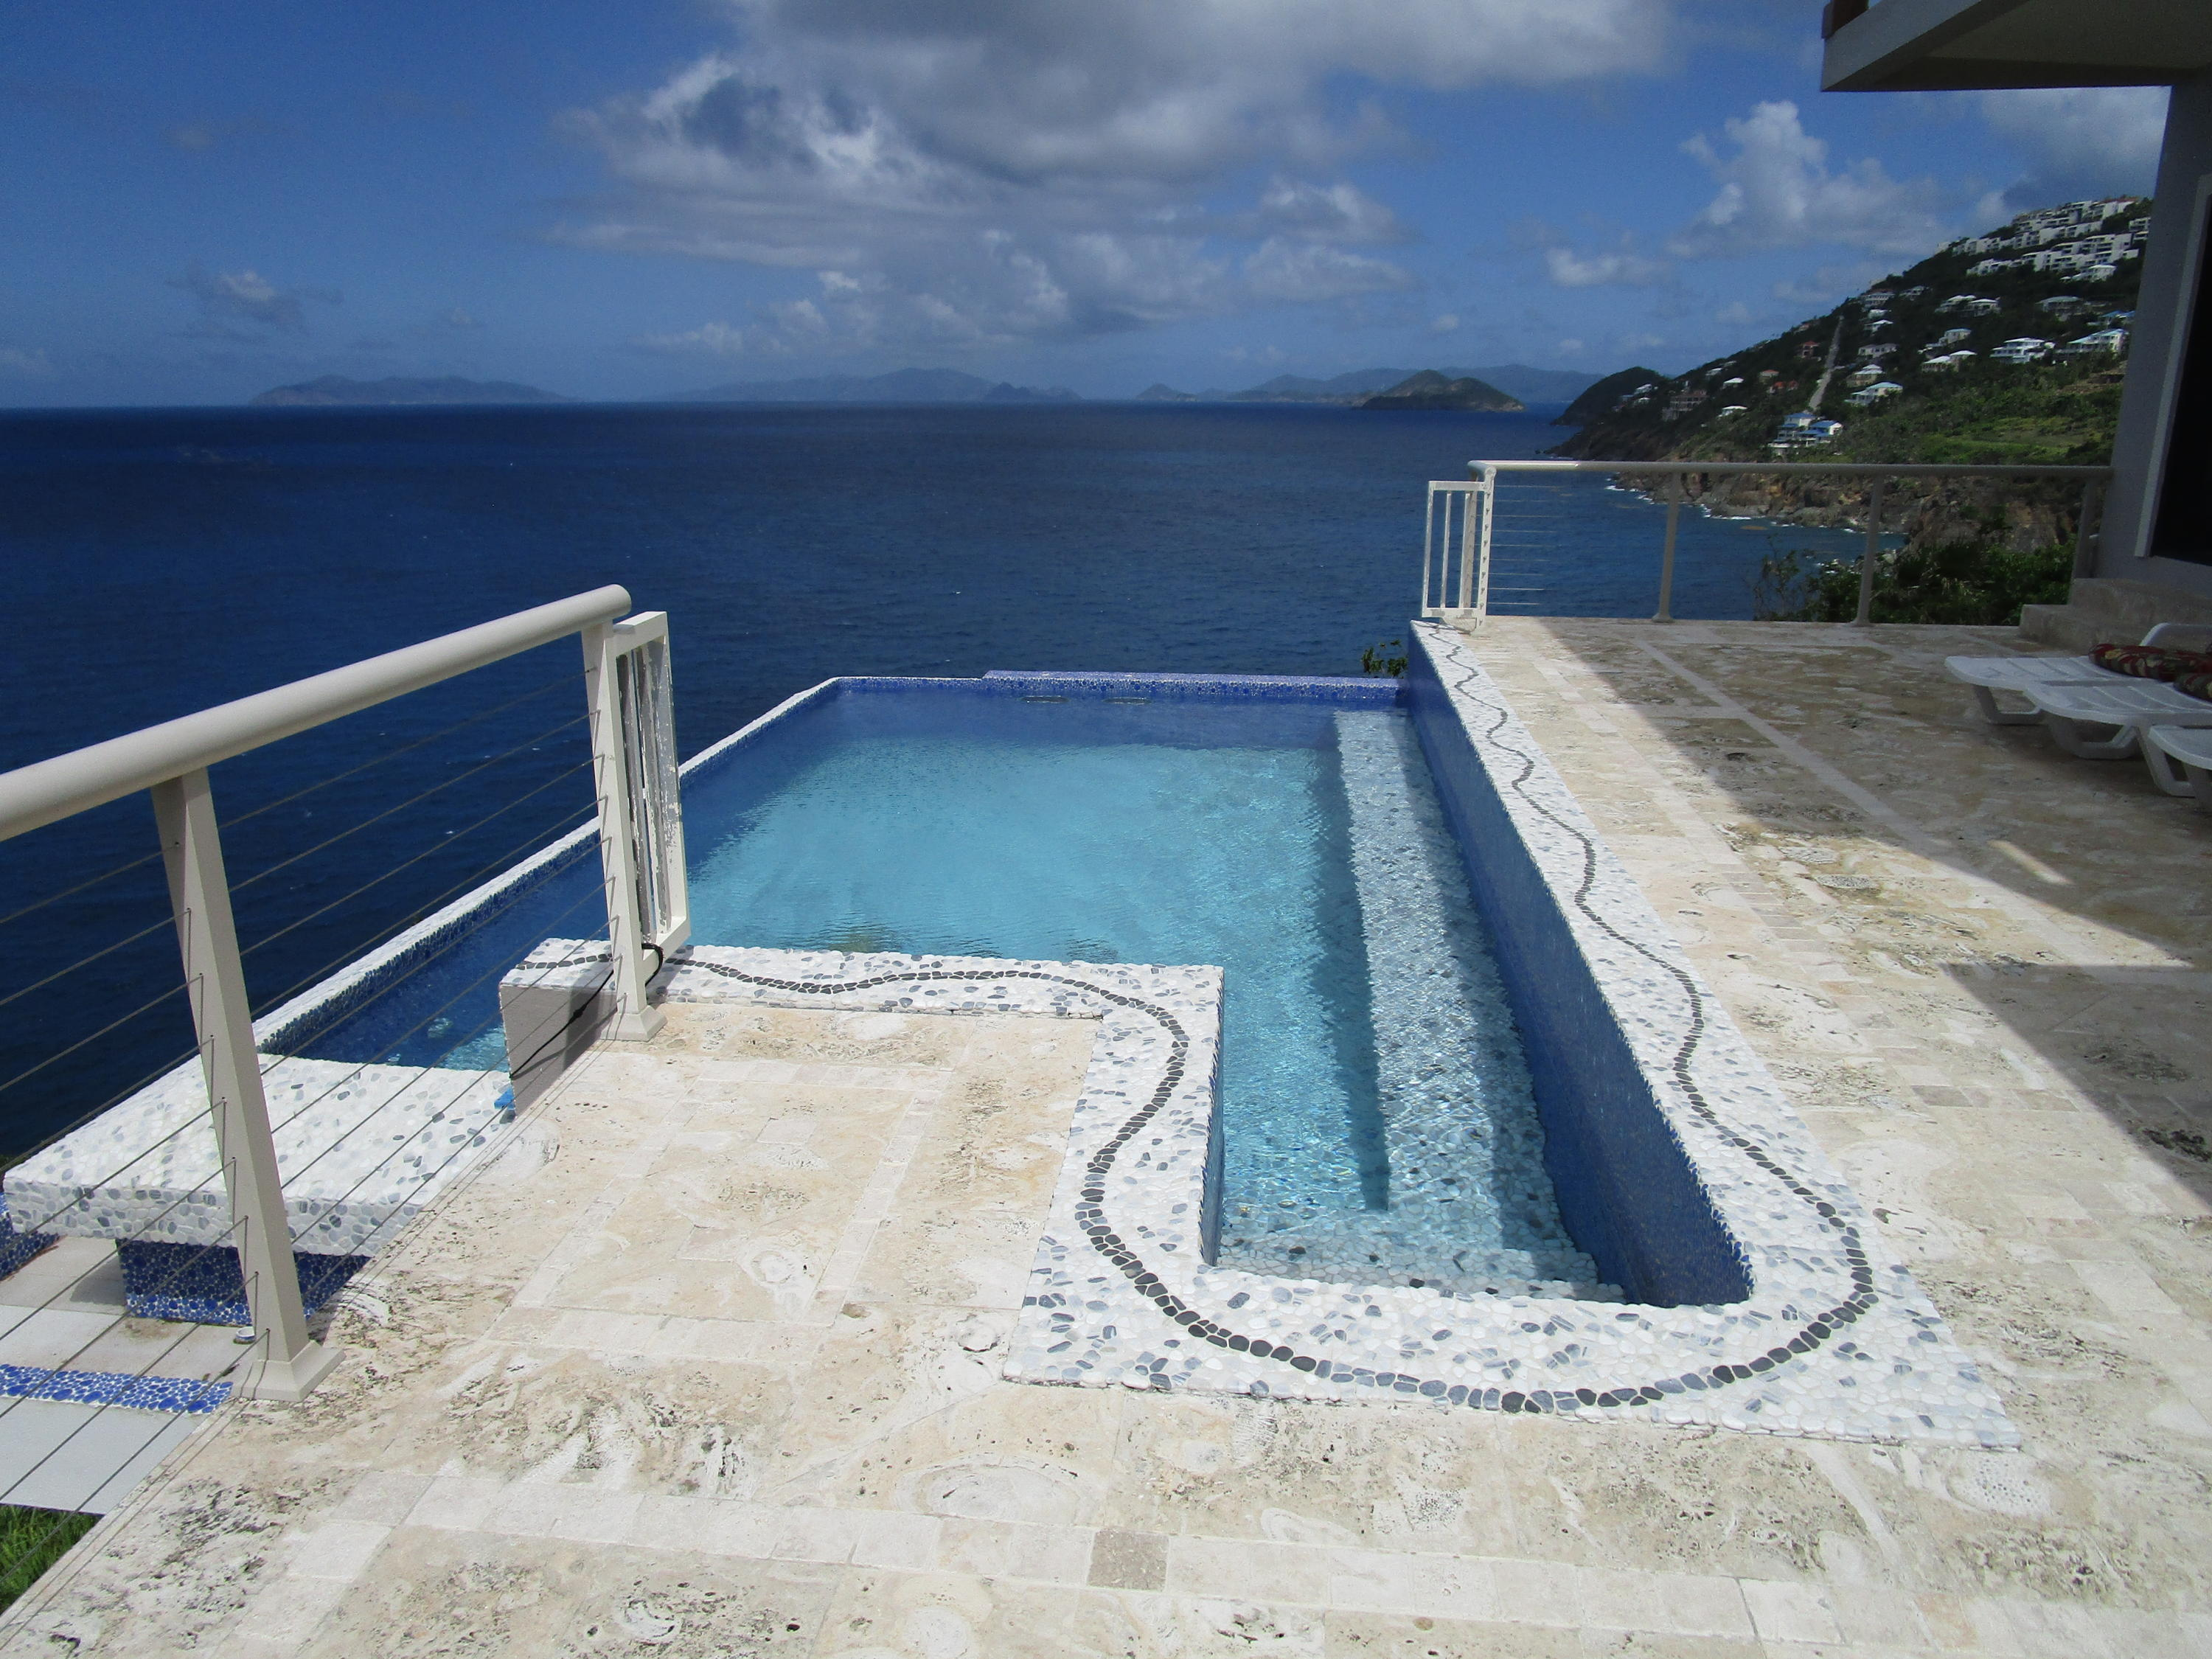 Single Family Home for Sale at 12-21 Peterborg GNS 12-21 Peterborg GNS St Thomas, Virgin Islands 00802 United States Virgin Islands